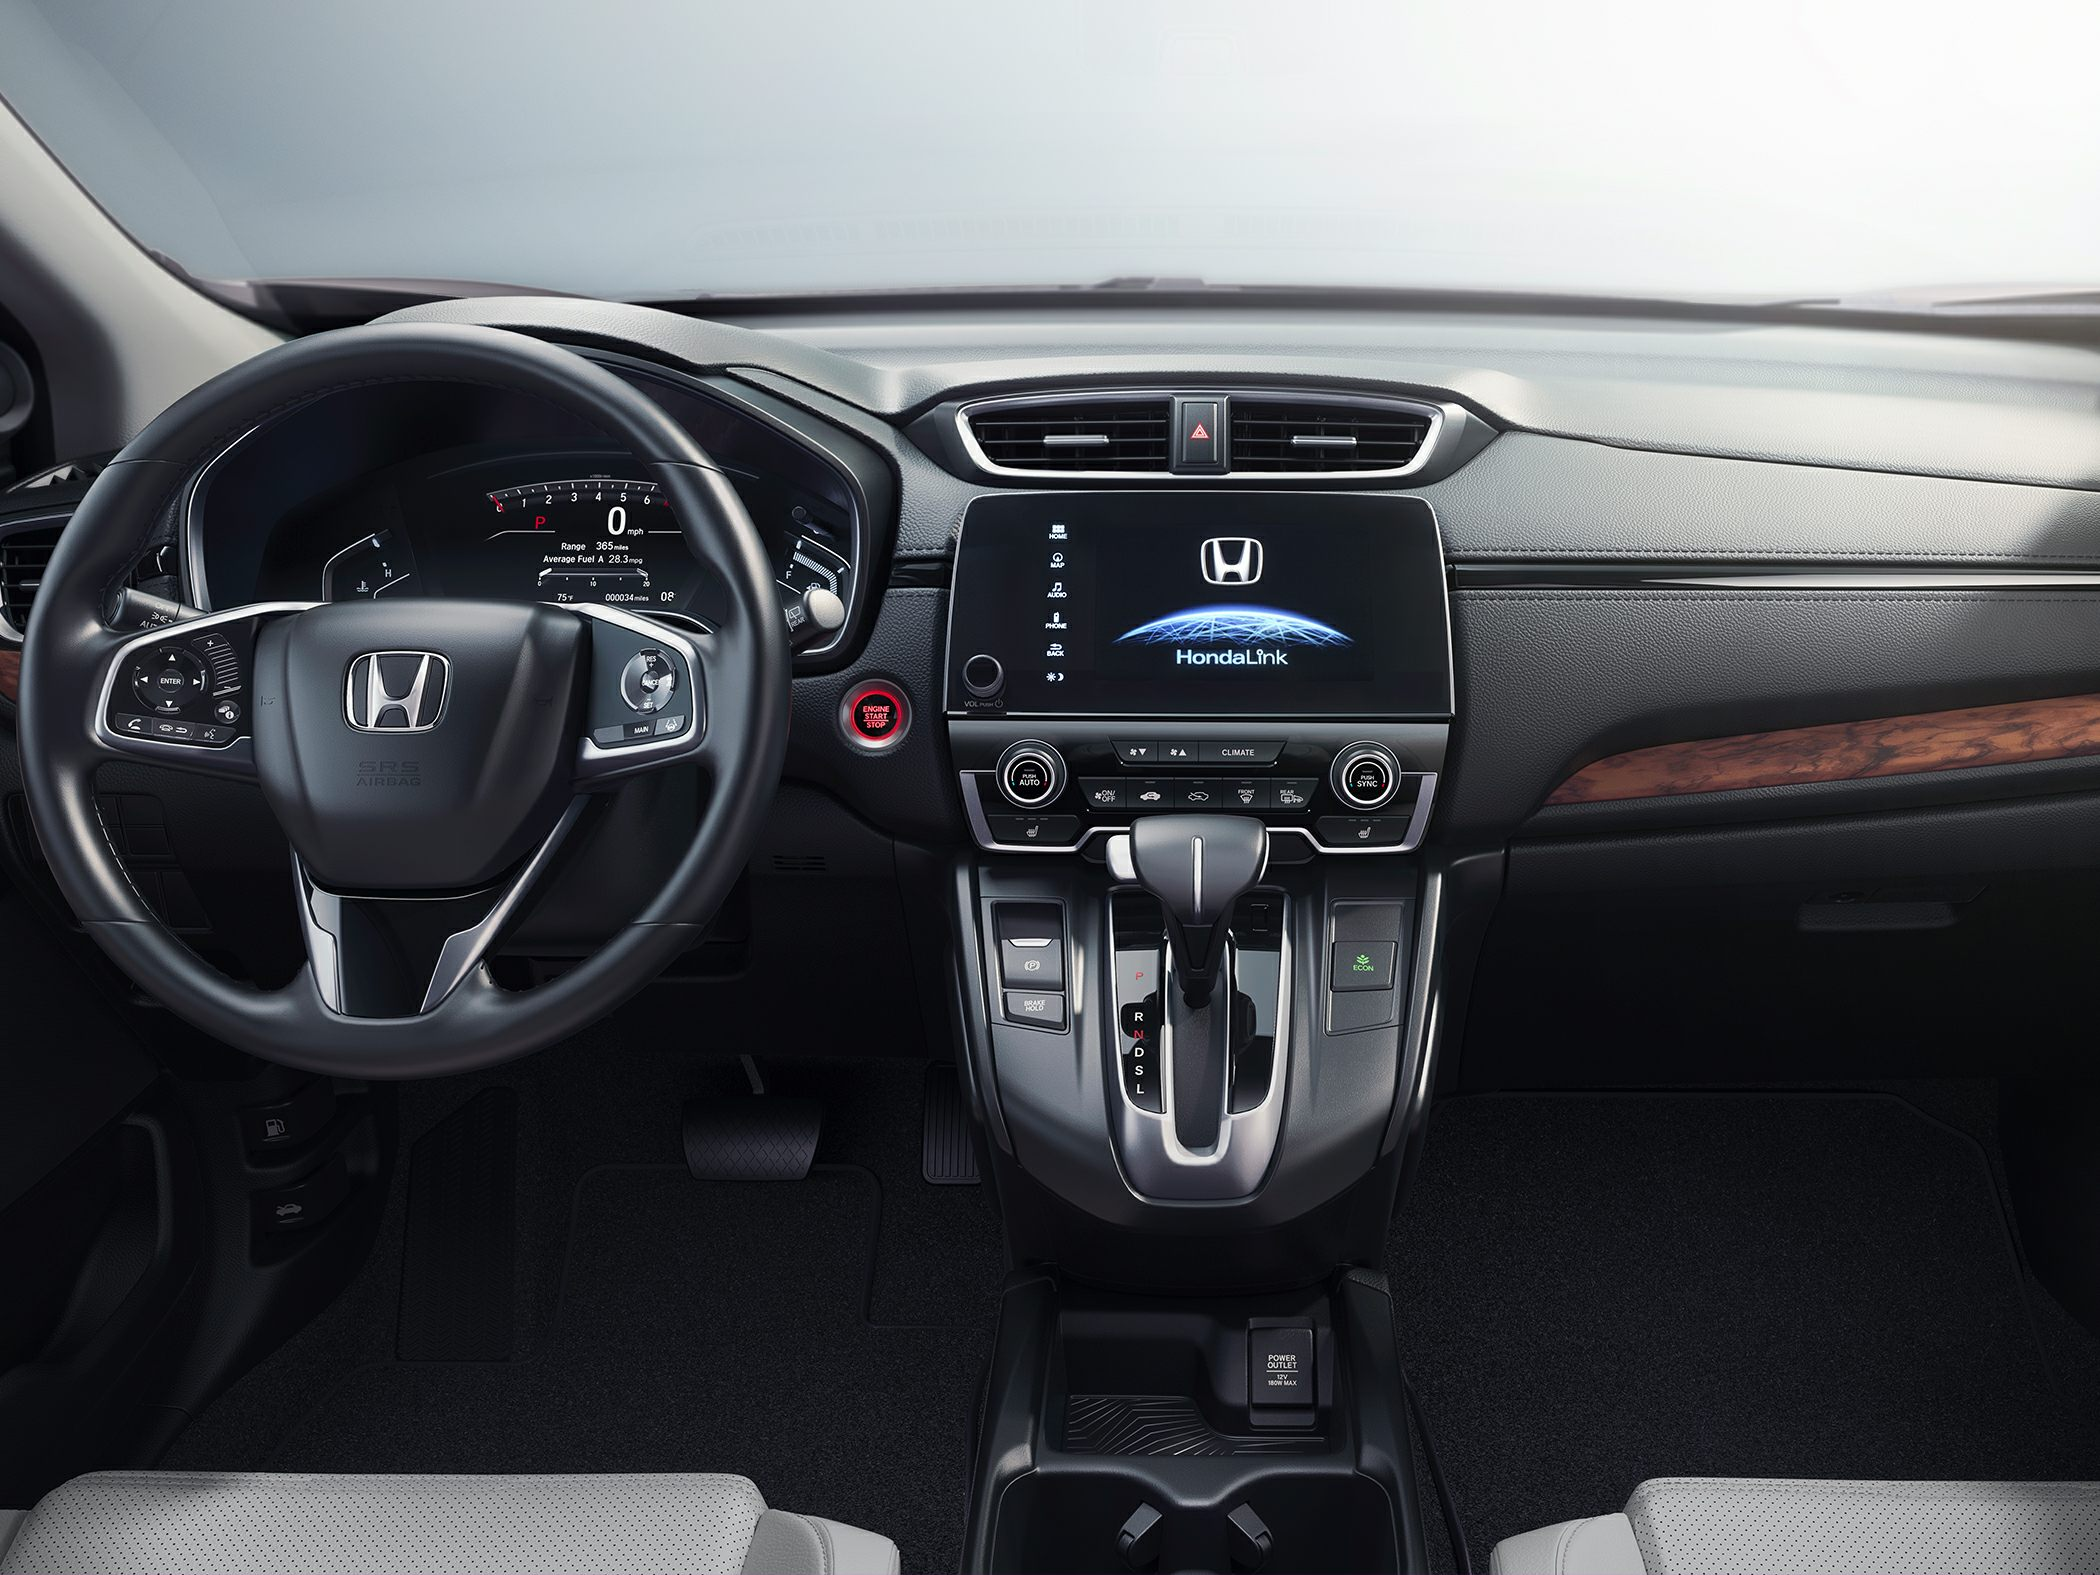 2018 honda crv interior colors. 2018 Honda CR-V LX Crv Interior Colors